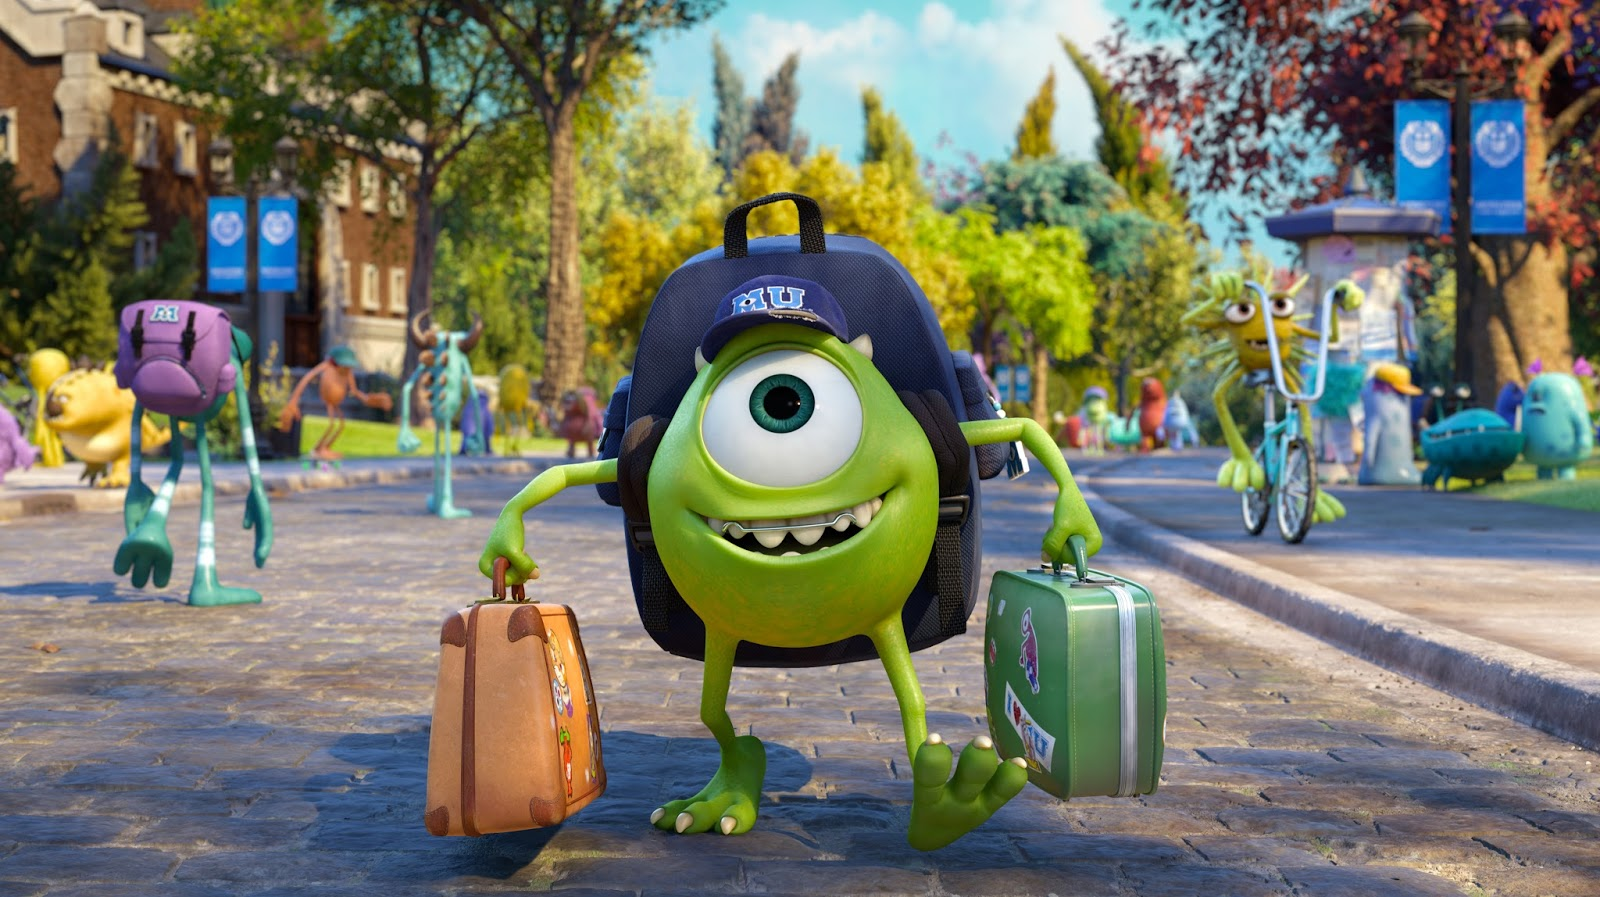 Shanamama: Monsters University 3D in theaters now!